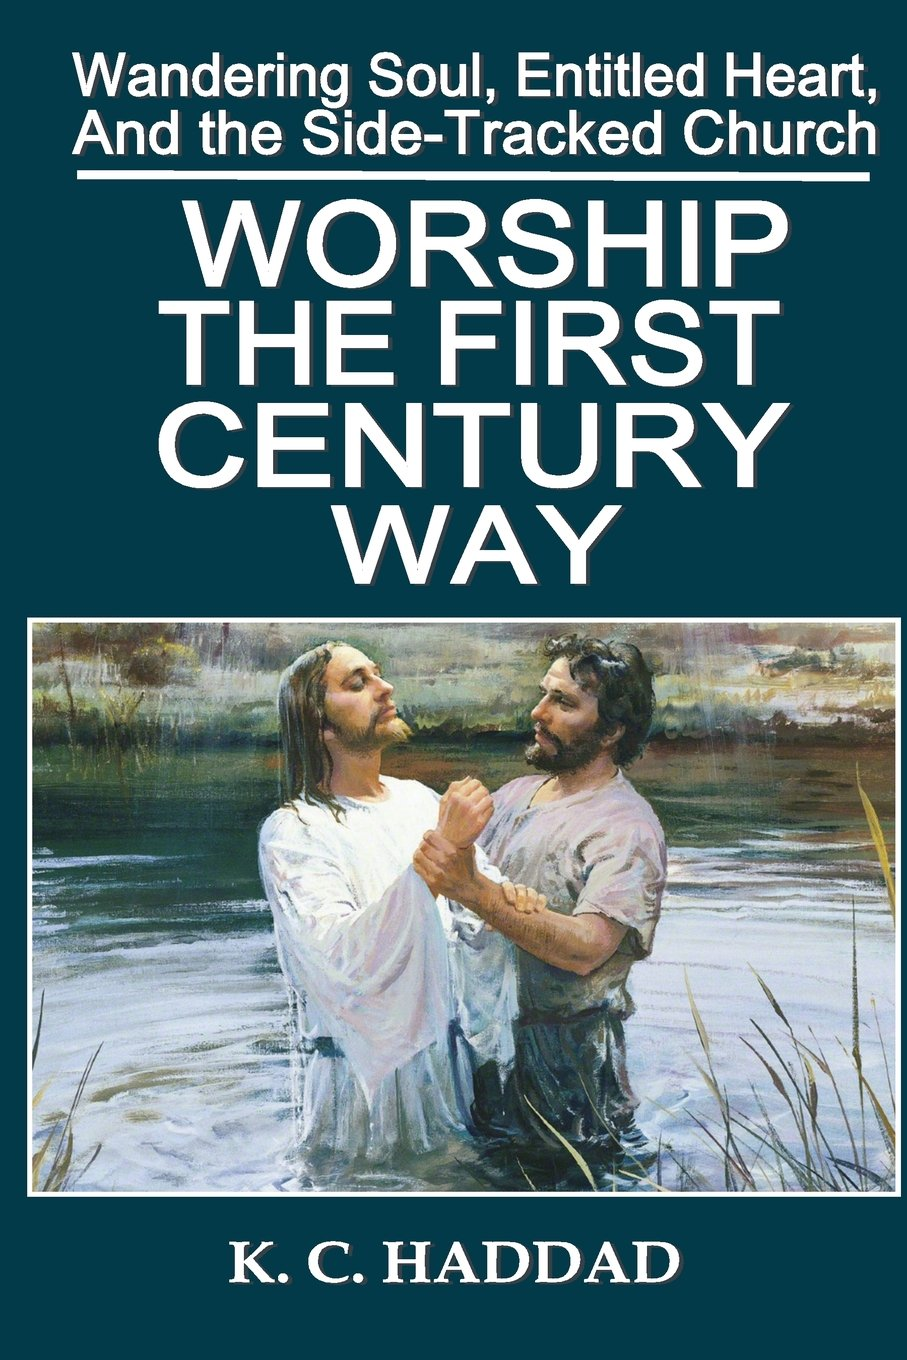 Download Worship the First-Century Way (Wandering Soul, Entitled Heart, Sidetracked Church) PDF